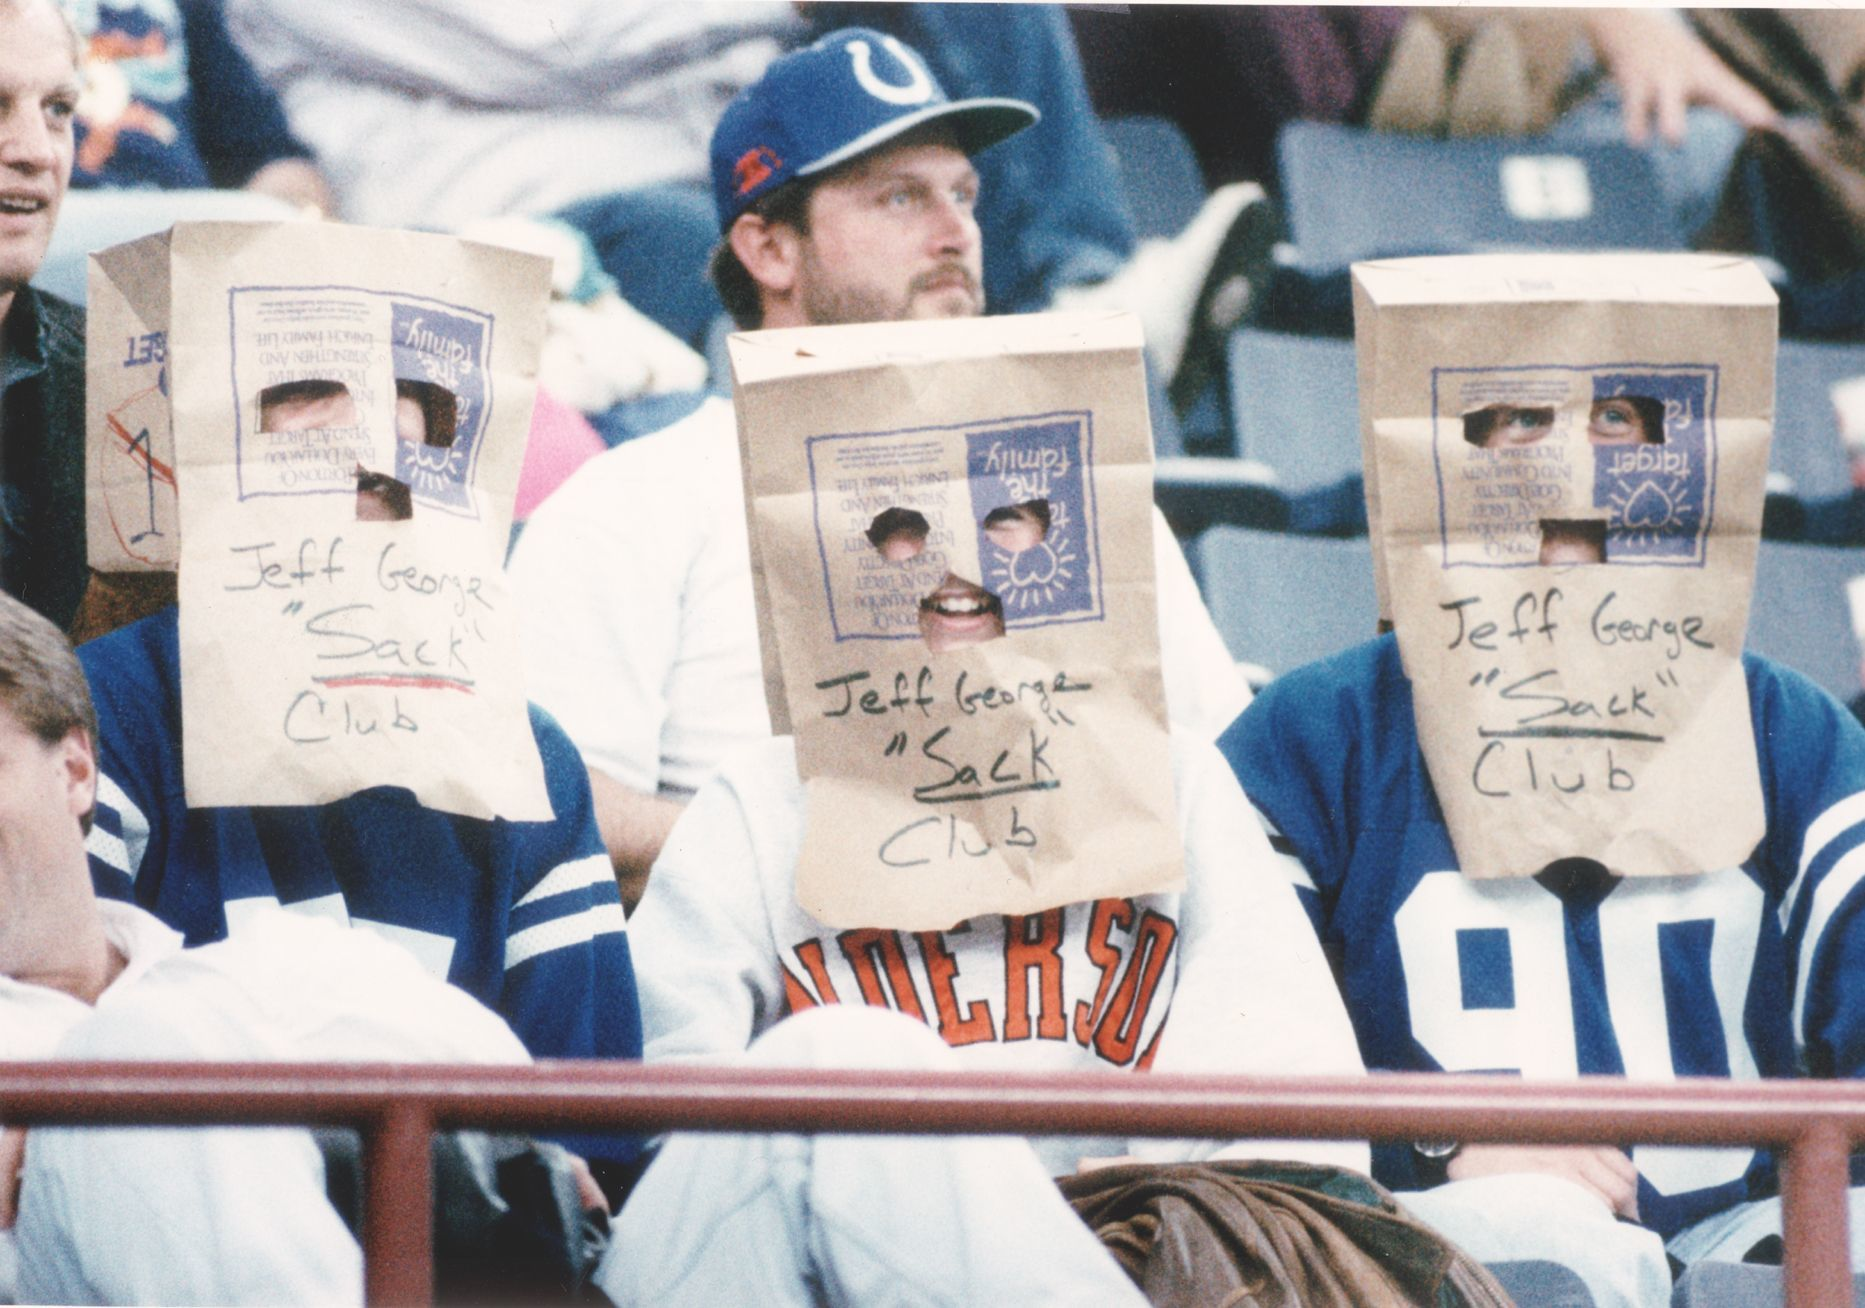 Fans during the Colts' 4-12 season in 1993 express their disapproval.